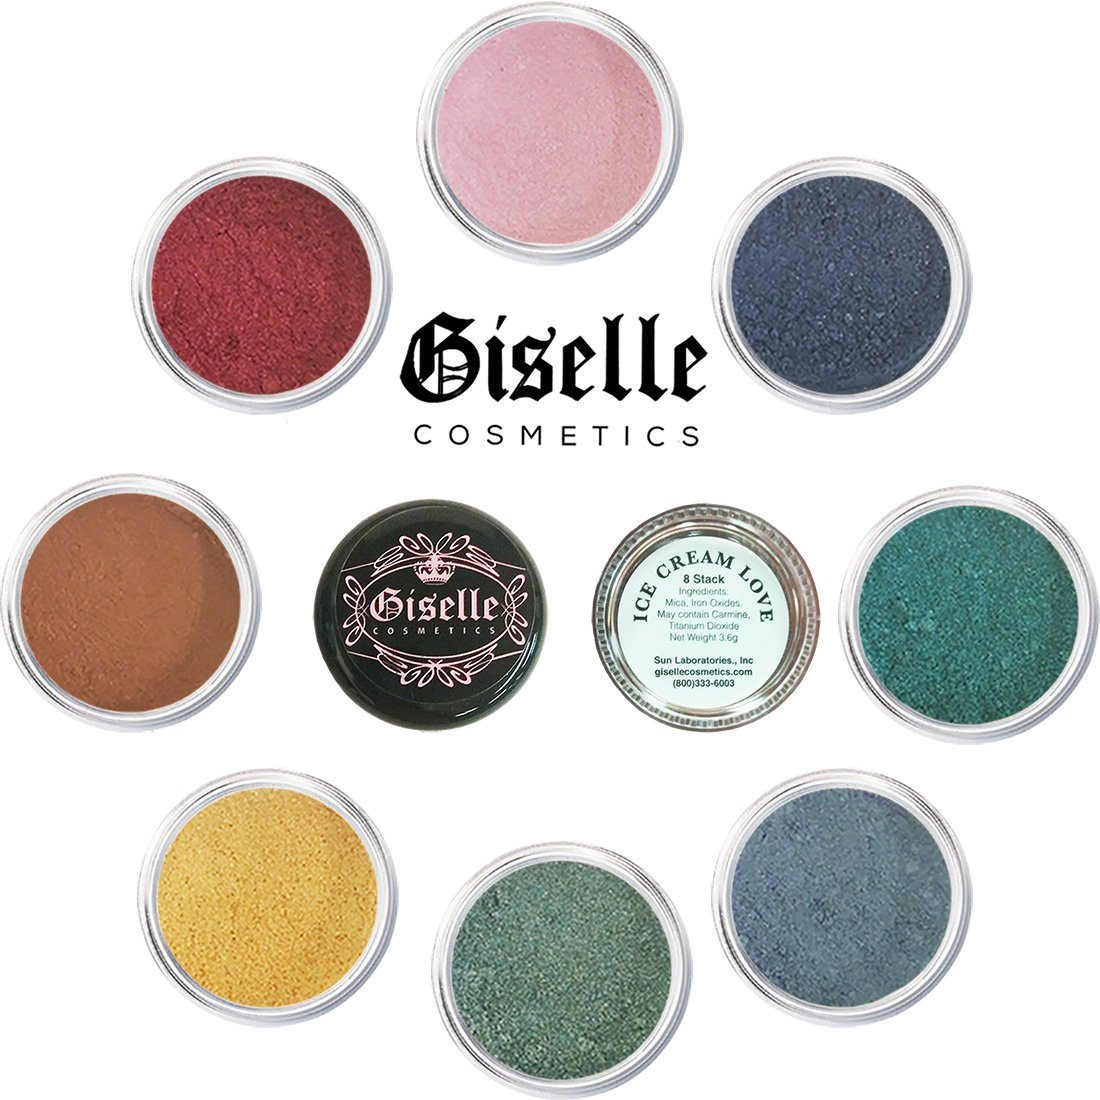 Eye Shadow - Mineral Makeup Eyeshadow Powder, Foundation, Concealer, Blush, and Contouring Palette | Pure, Non-Diluted Shimmer Mineral Make Up in 8 Lolly Pop Hues and Shades | For All Skin Giselle Cosmetics